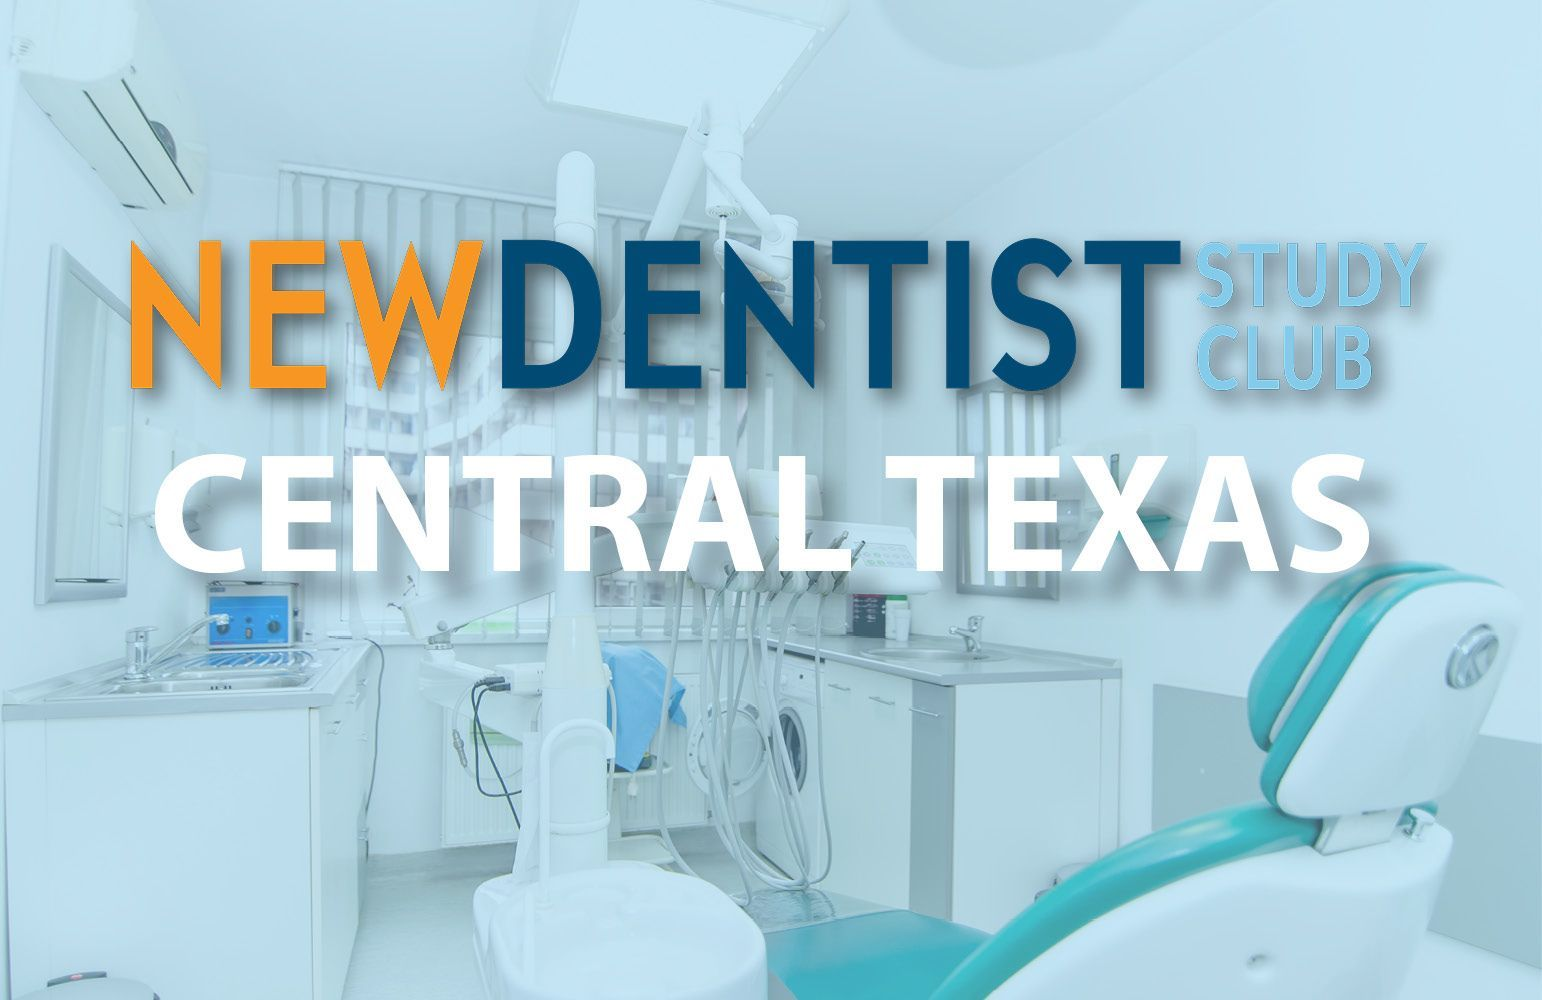 Central texas new dentist